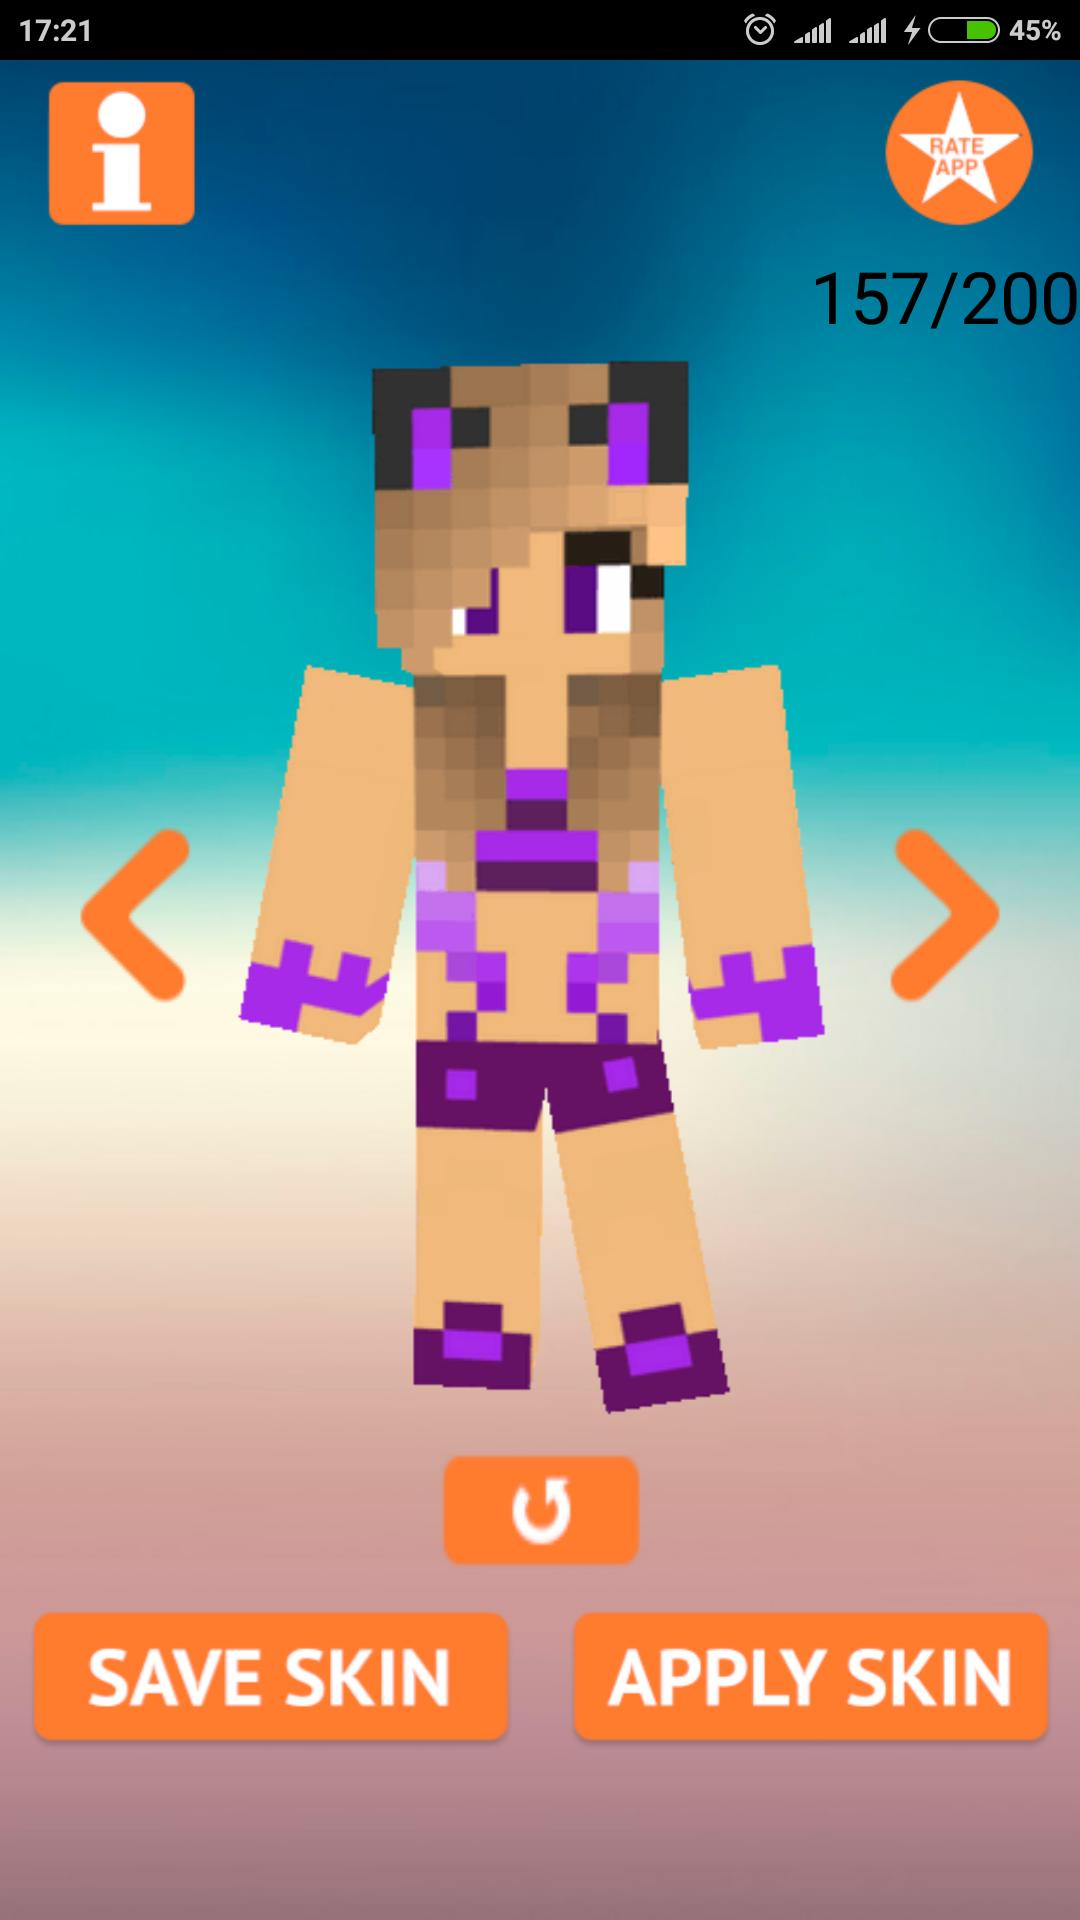 7ac604c032 Skins Girl in Swimsuit for Minecraft for Android - APK Download